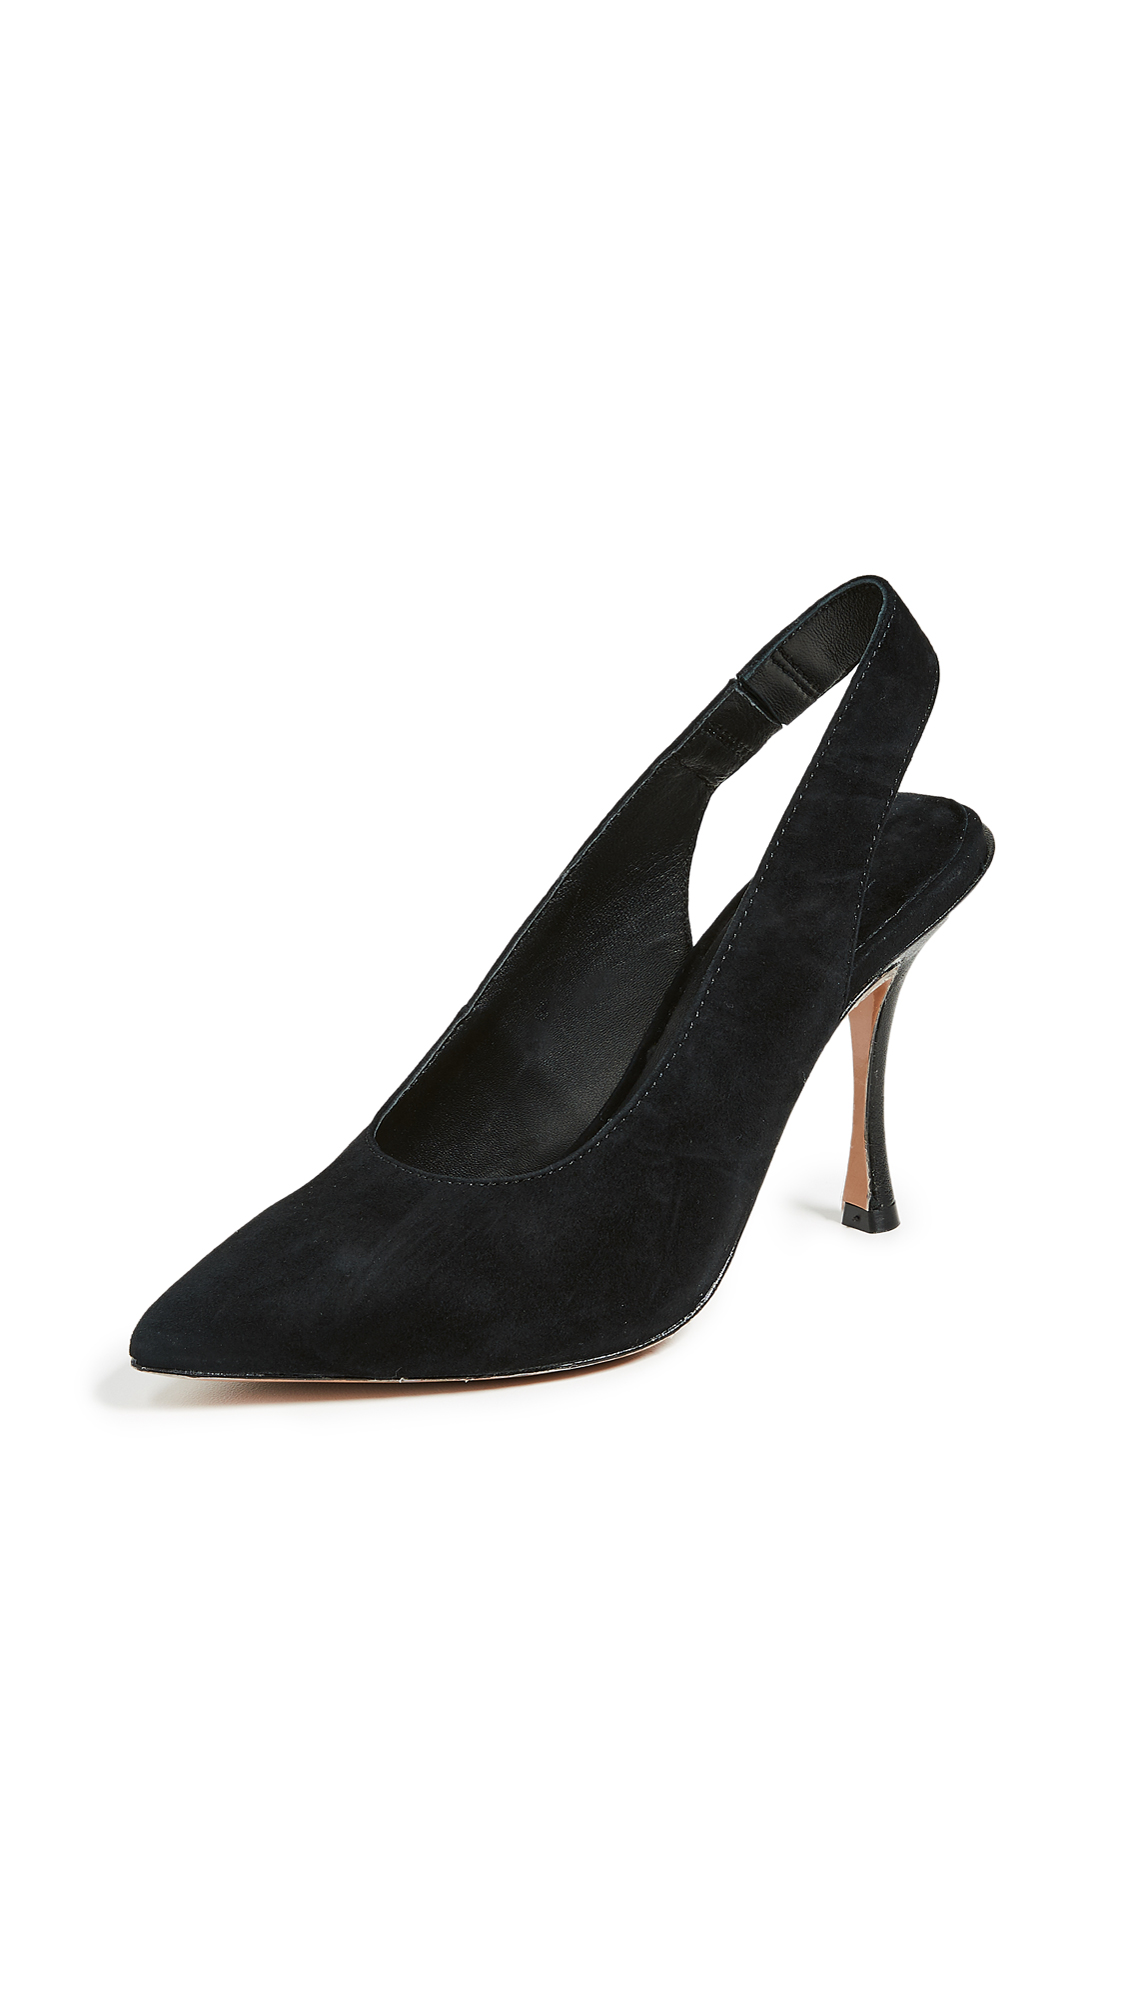 alice + olivia Innet Slingback Pumps - Black